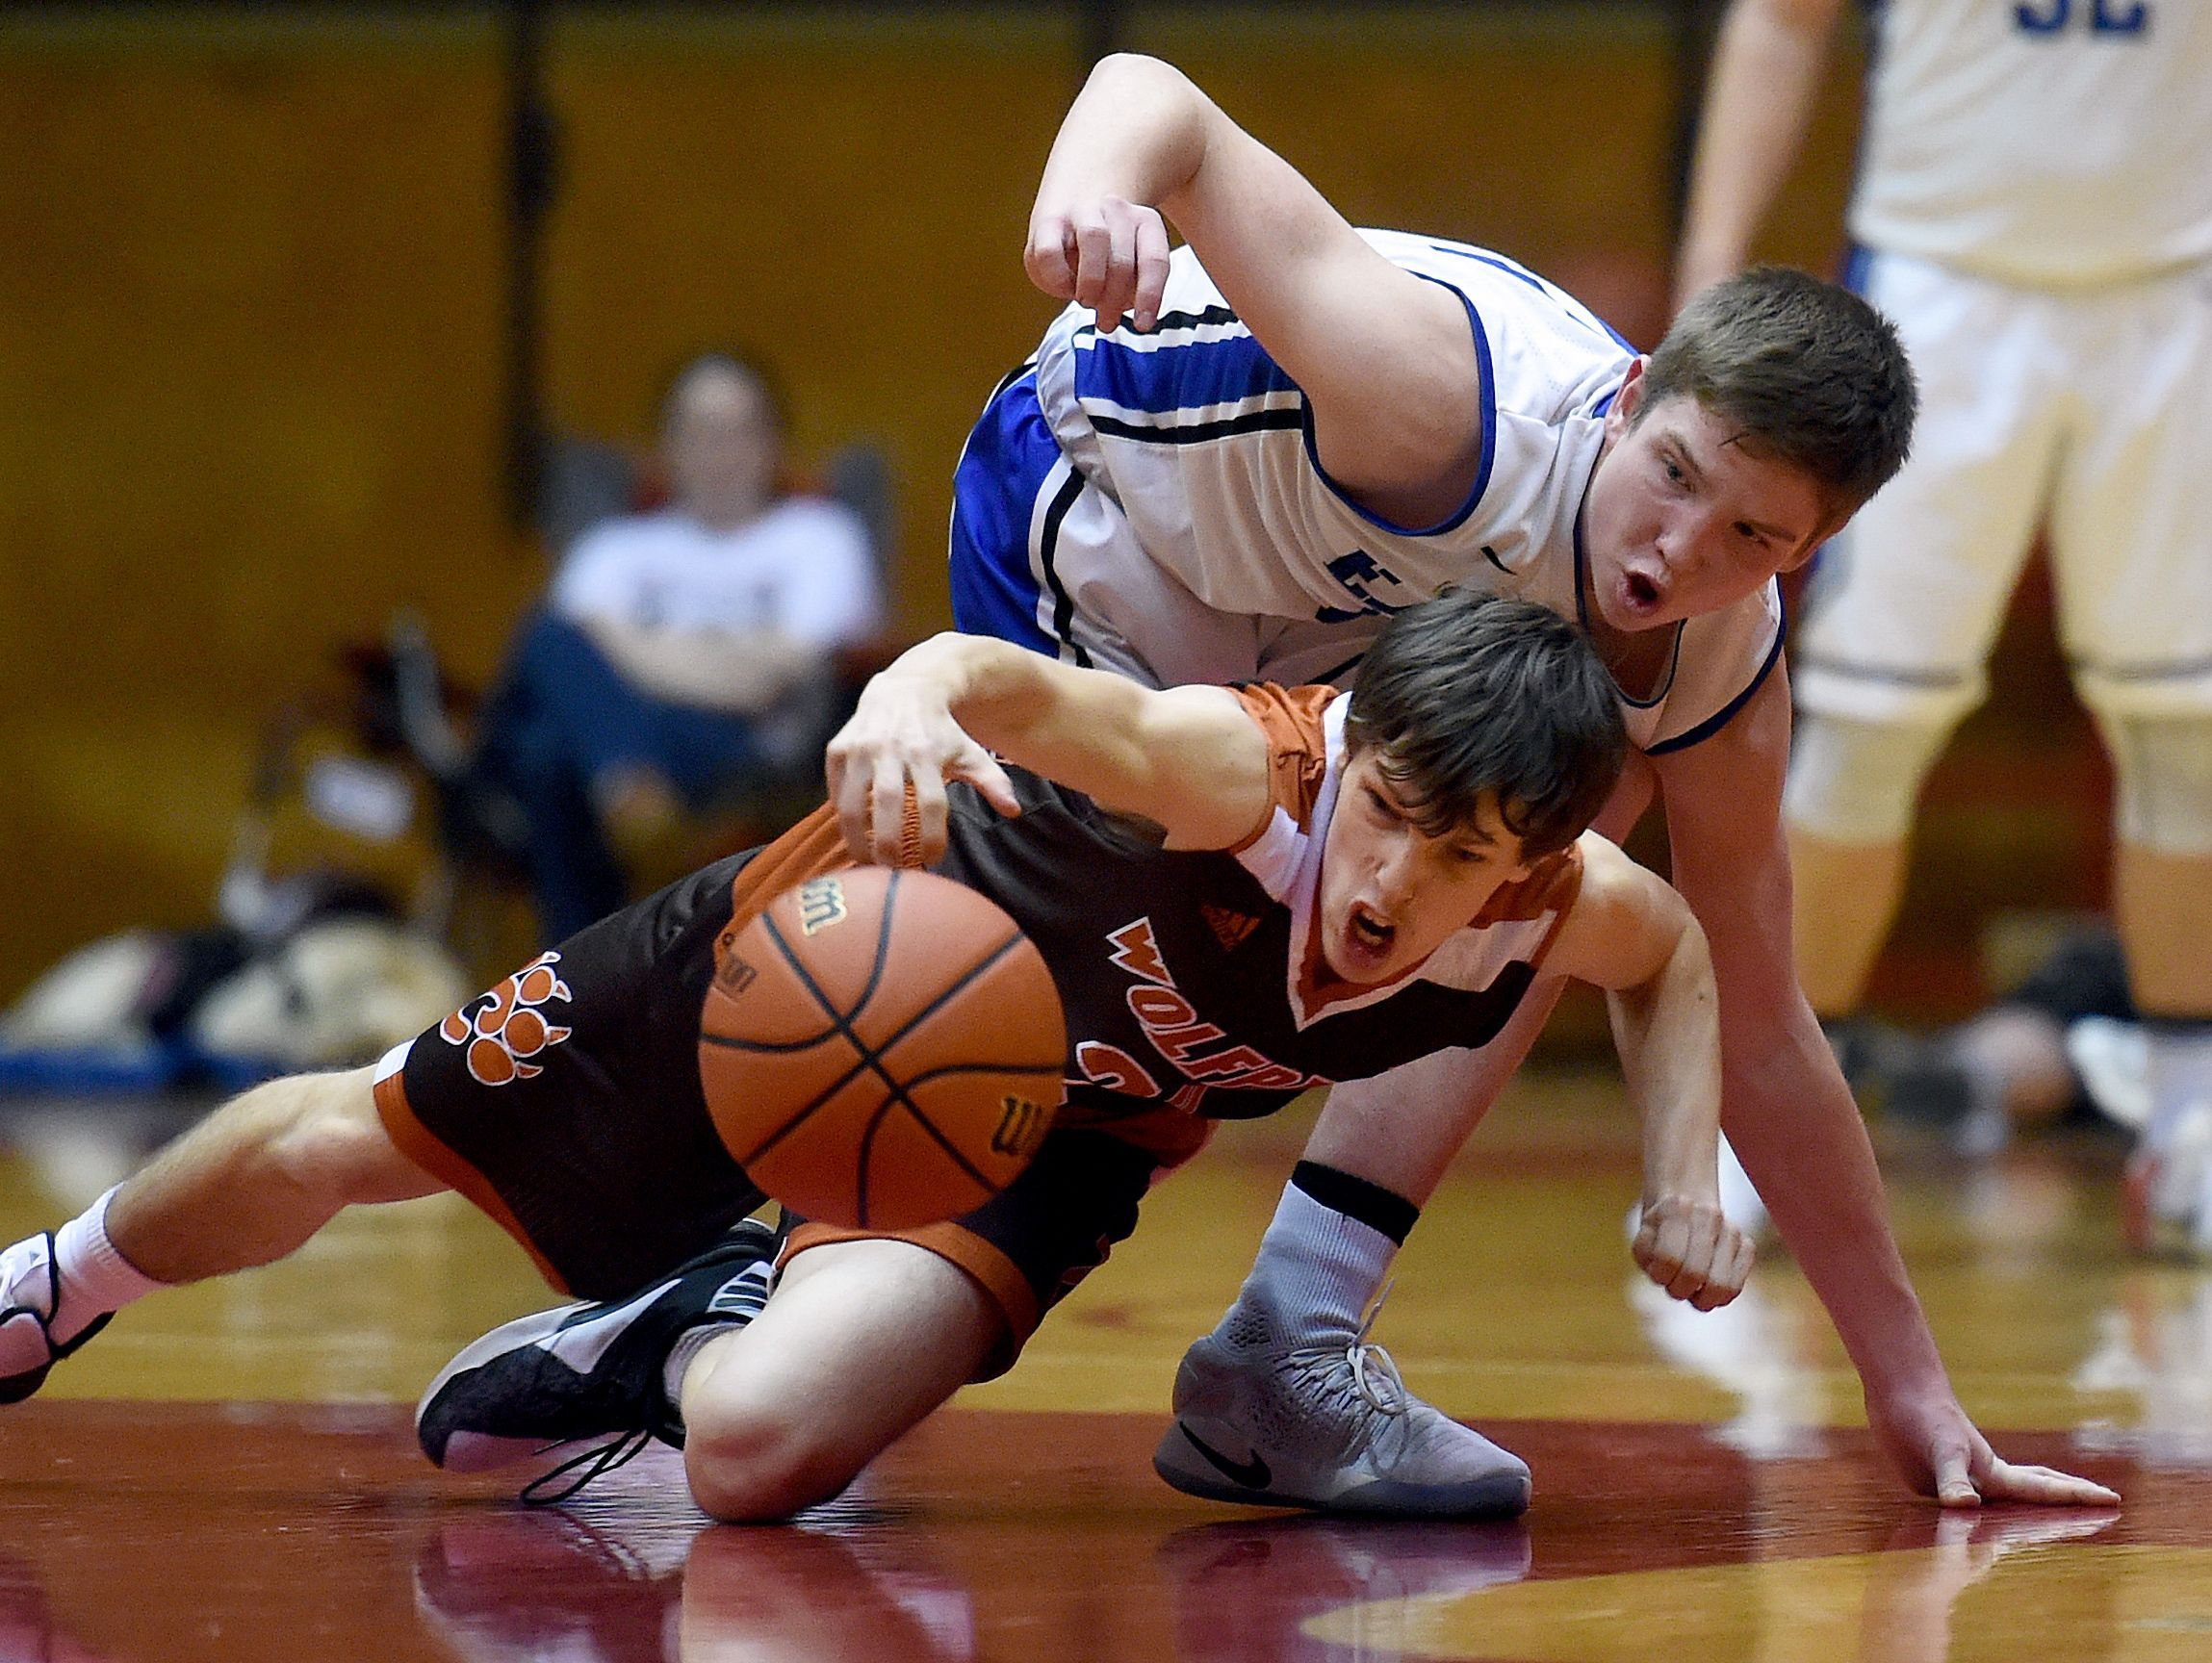 Crawford County's Noah Sturgeon and Heritage Christian's Andrew Williams dive for the ball Saturday, March 18, 2017 during the Class 2A basketball semi-state championship in the Tiernan Center at Richmond.